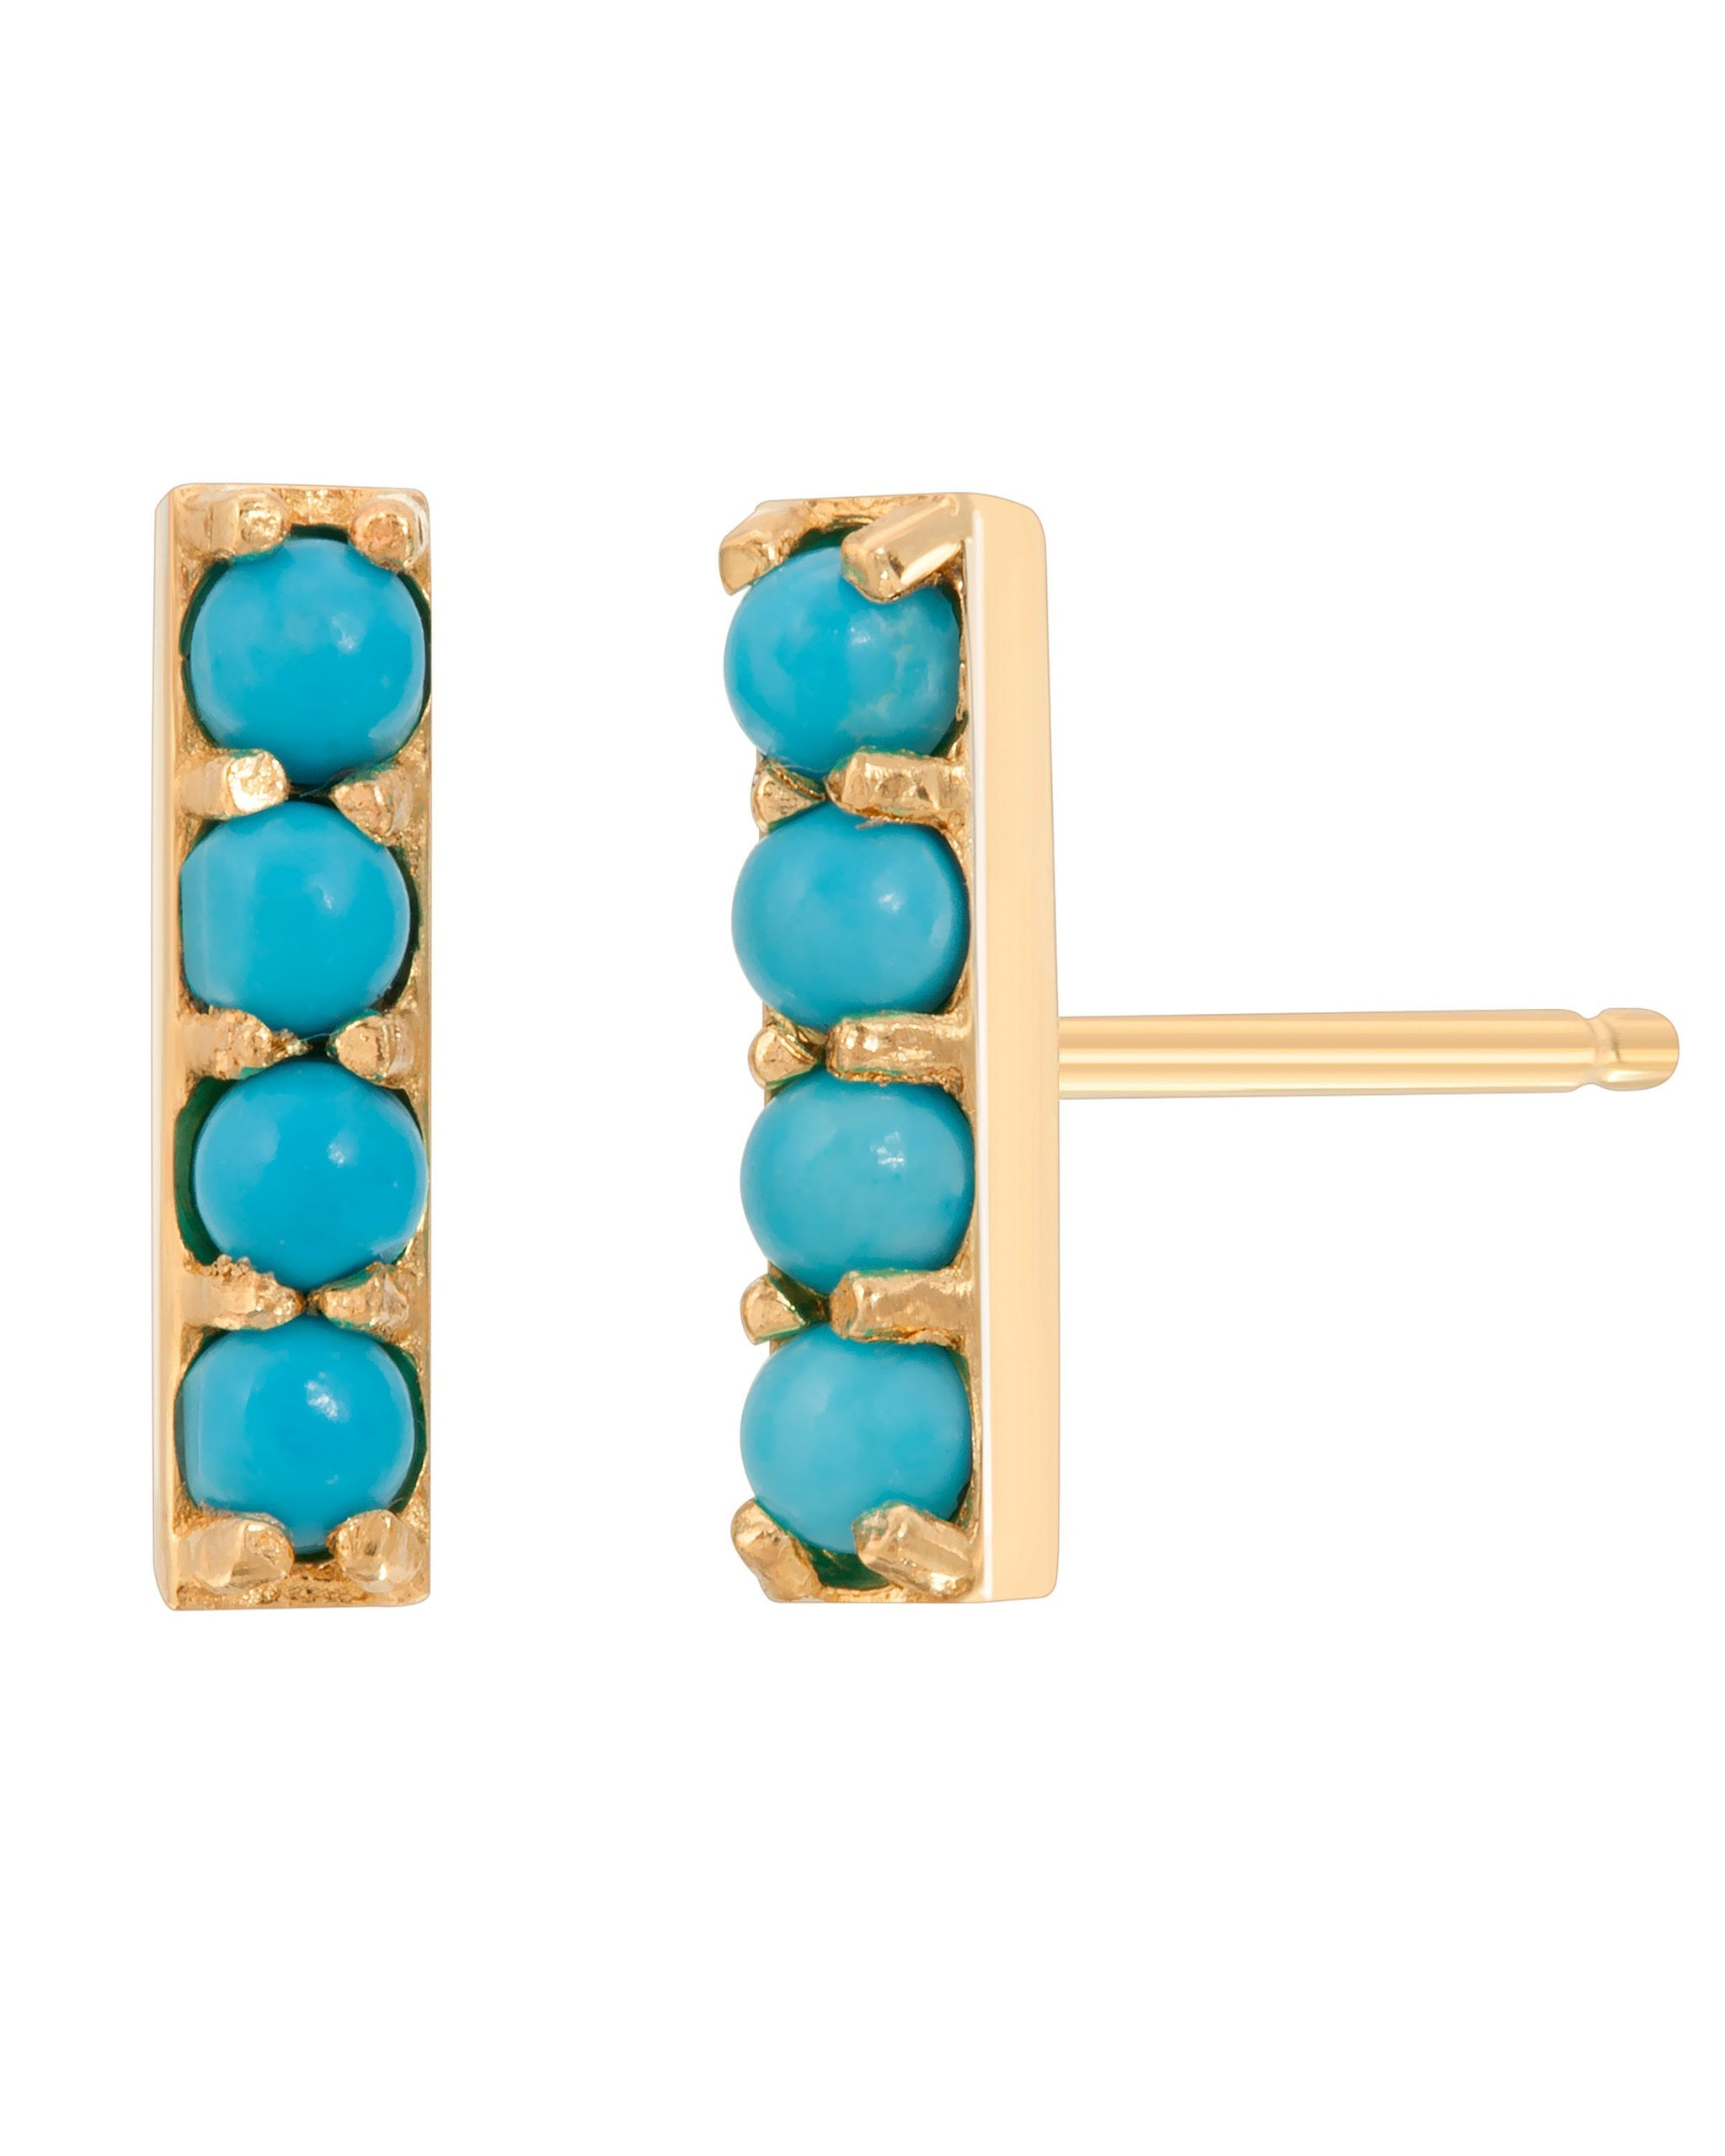 RIVER STUDS 10MM - TURQUOISE + TOBACCO